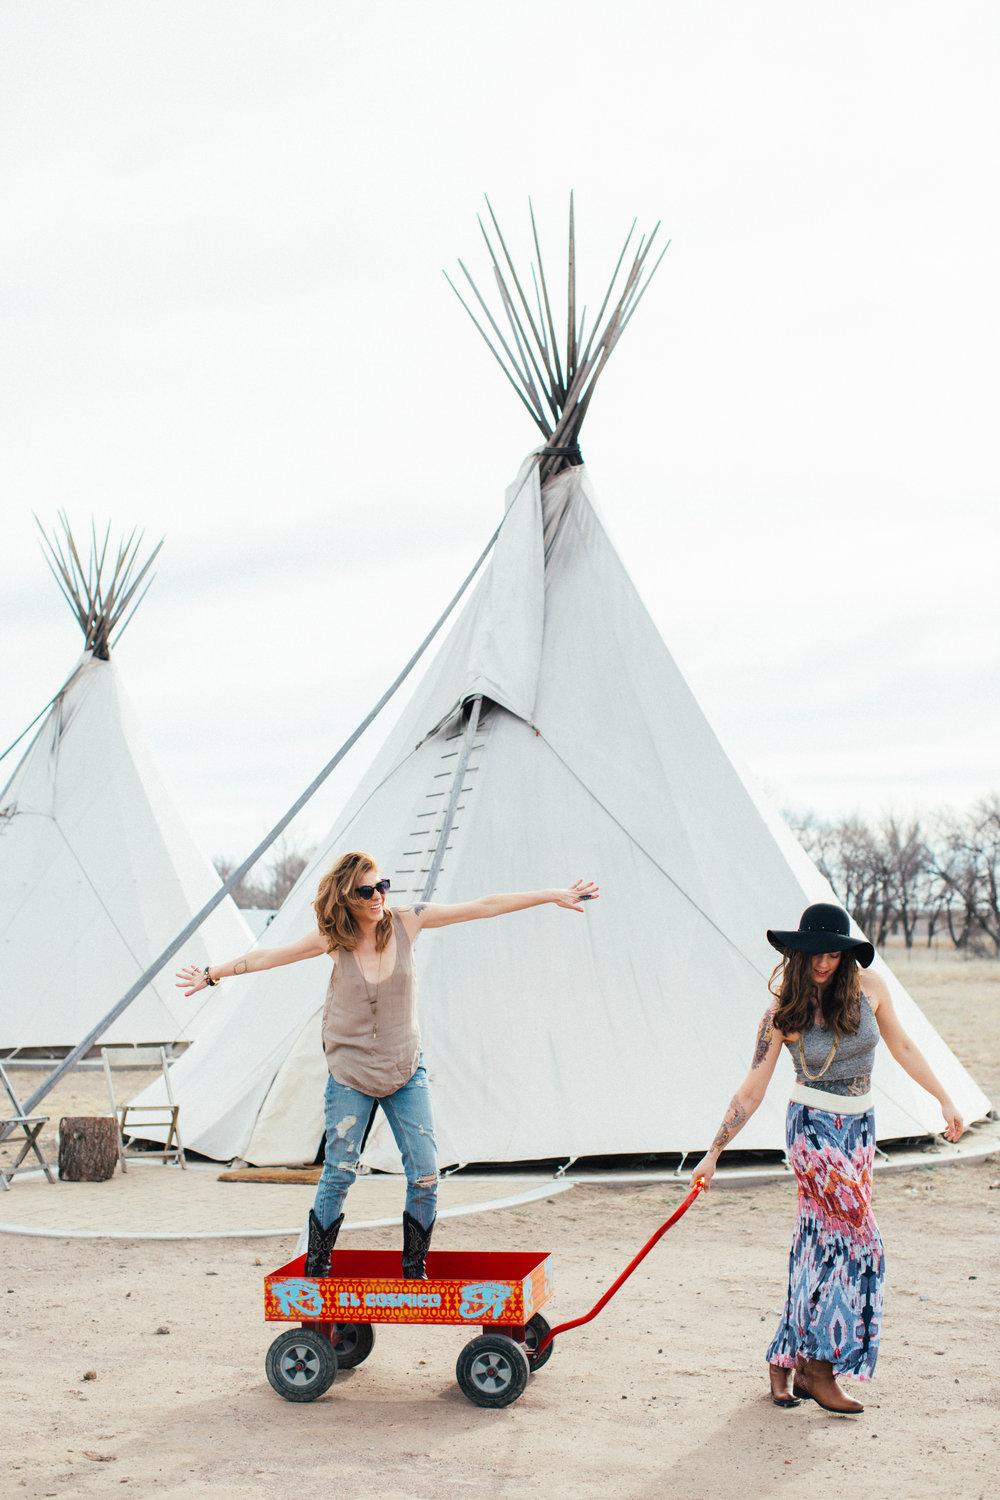 Marfa Texas Day 1 Chloe and Ashley 2015-16.jpg